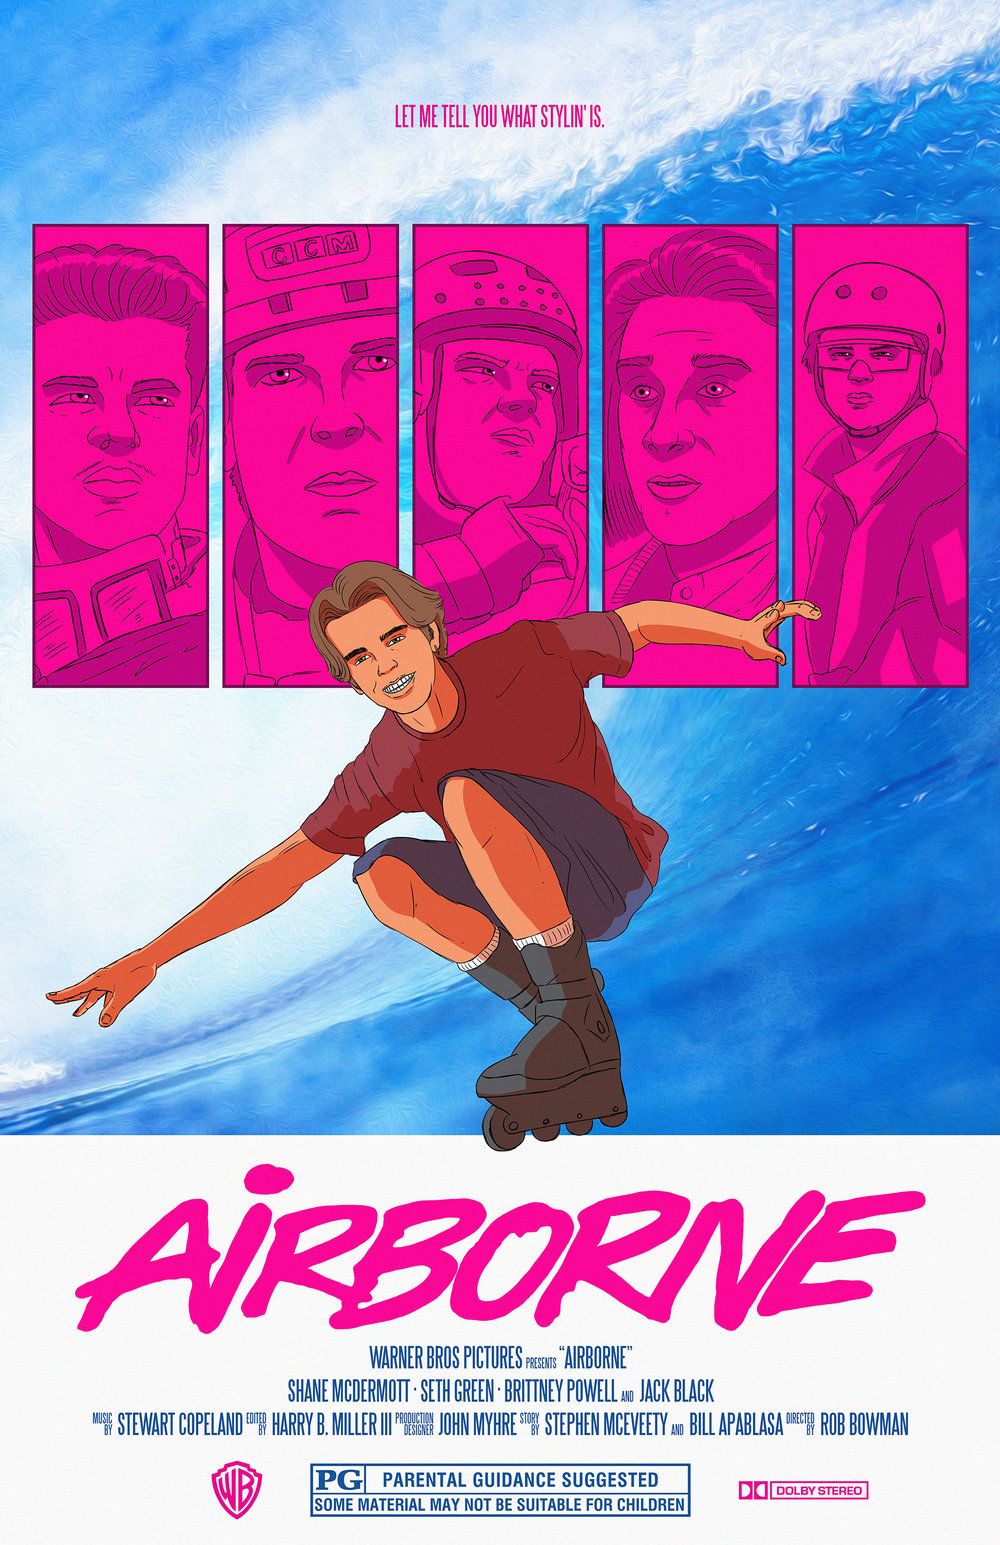 Jon-Caron-Airborne-Movie-Poster-JC-Art.jpg